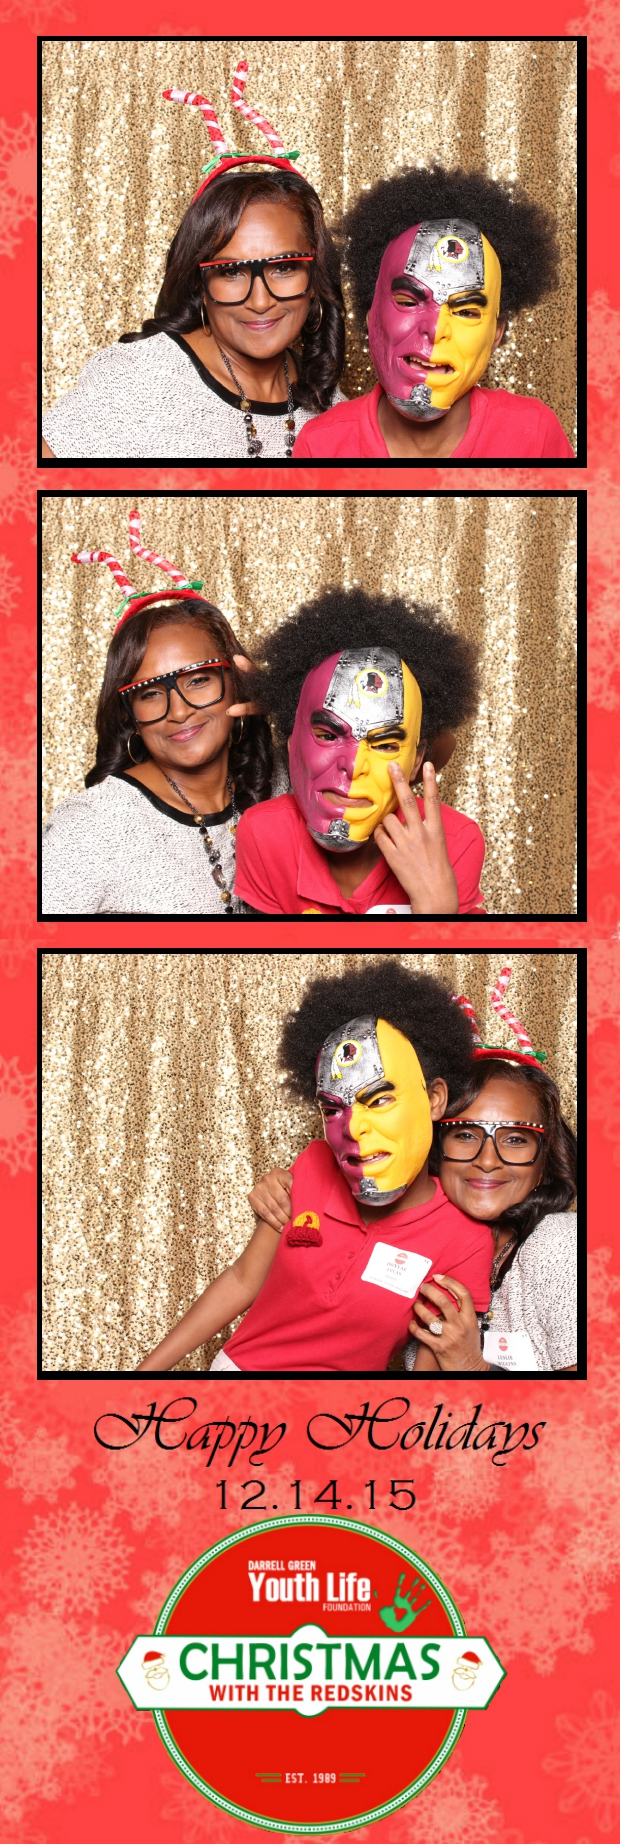 Guest House Events Photo Booth DGYLF Strips (13).jpg